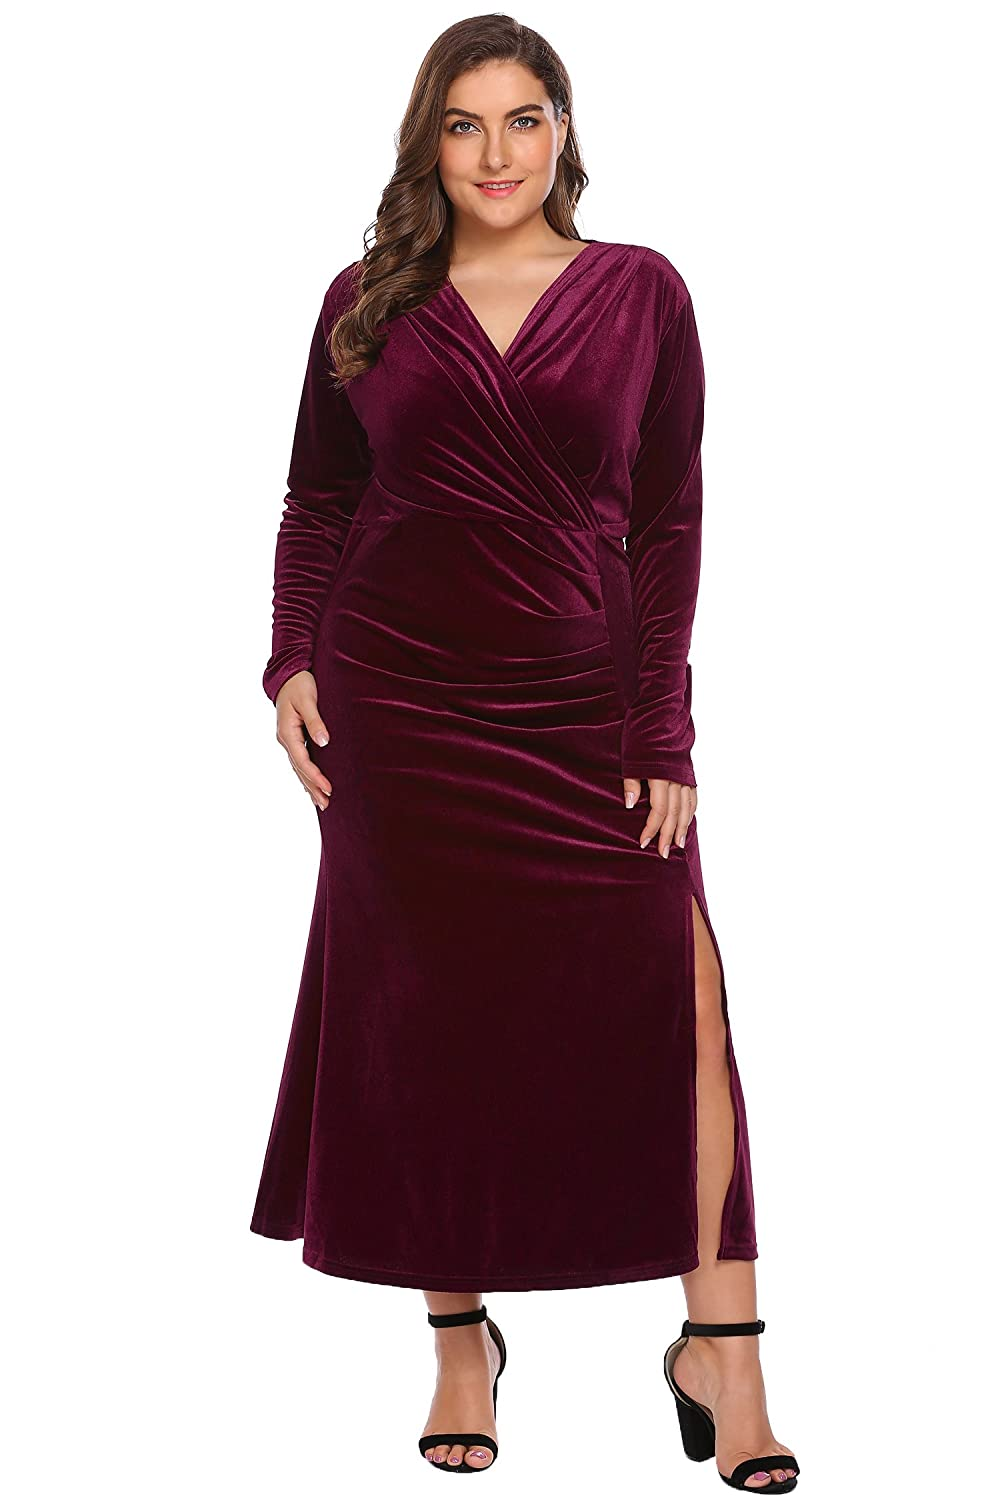 Women's Plus Size Retro 1950s V-Neck Wrap Velvet Split Hem Elegant Party Evening Maxi Dress INH022093